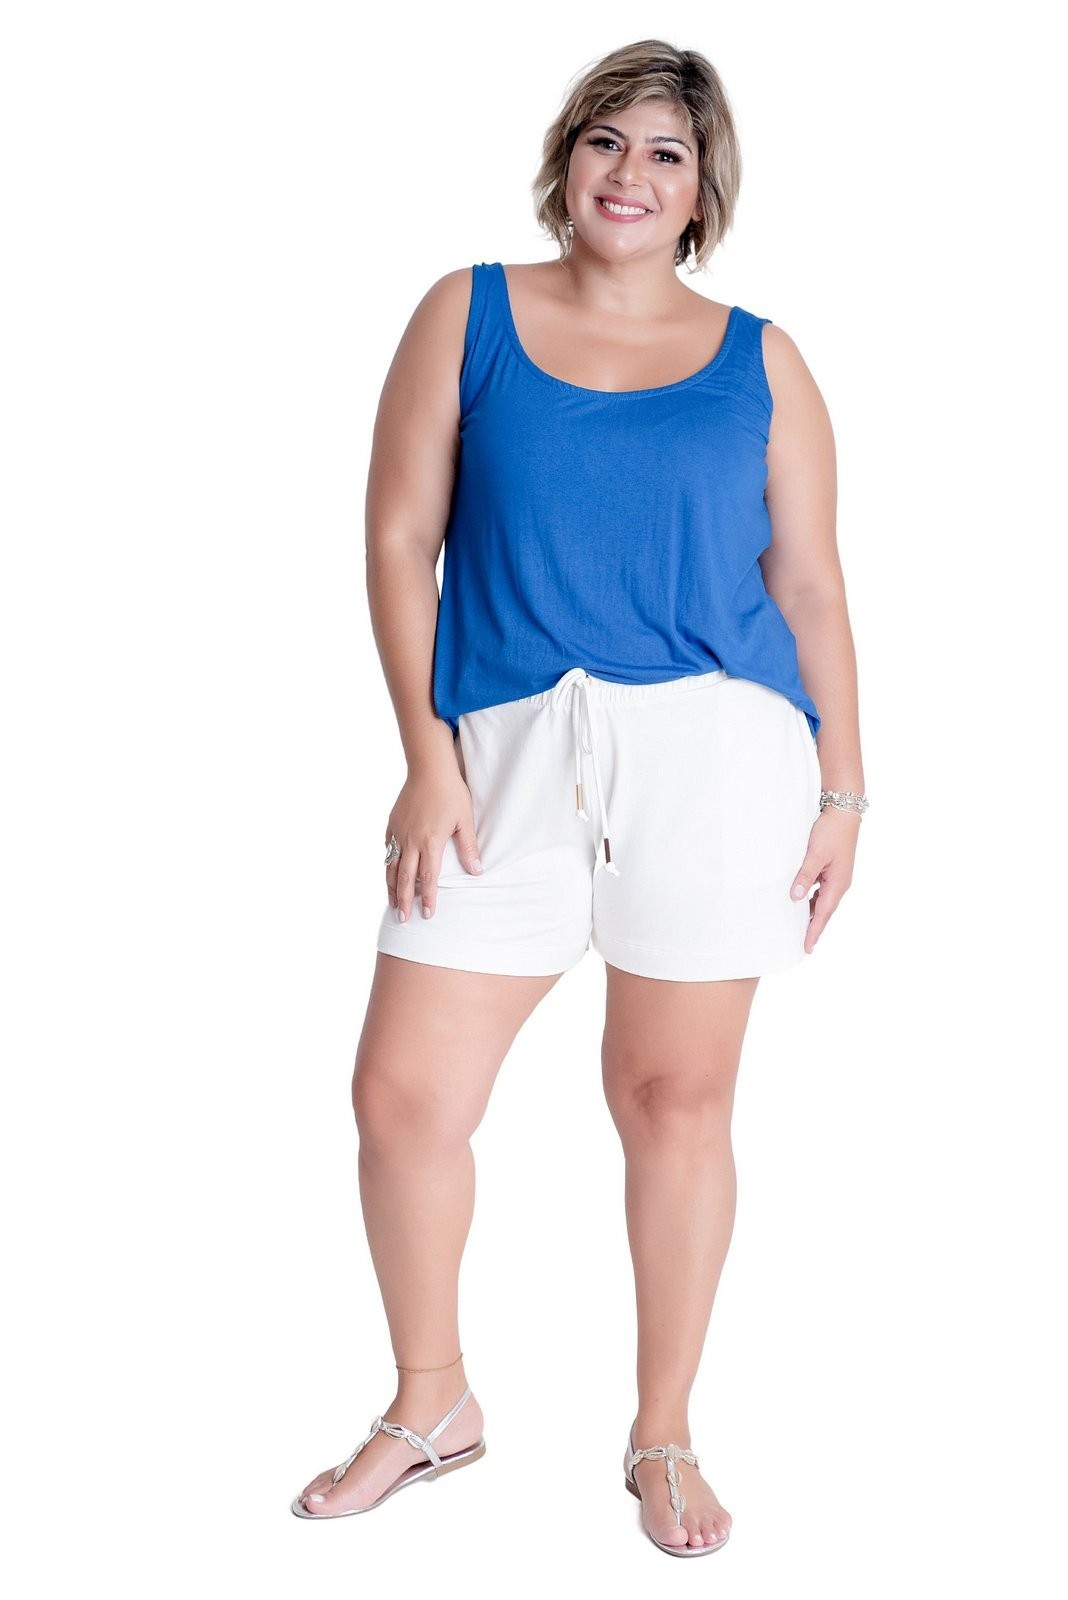 REGATA  PLUS SIZE EVASÊ COLORIDAS